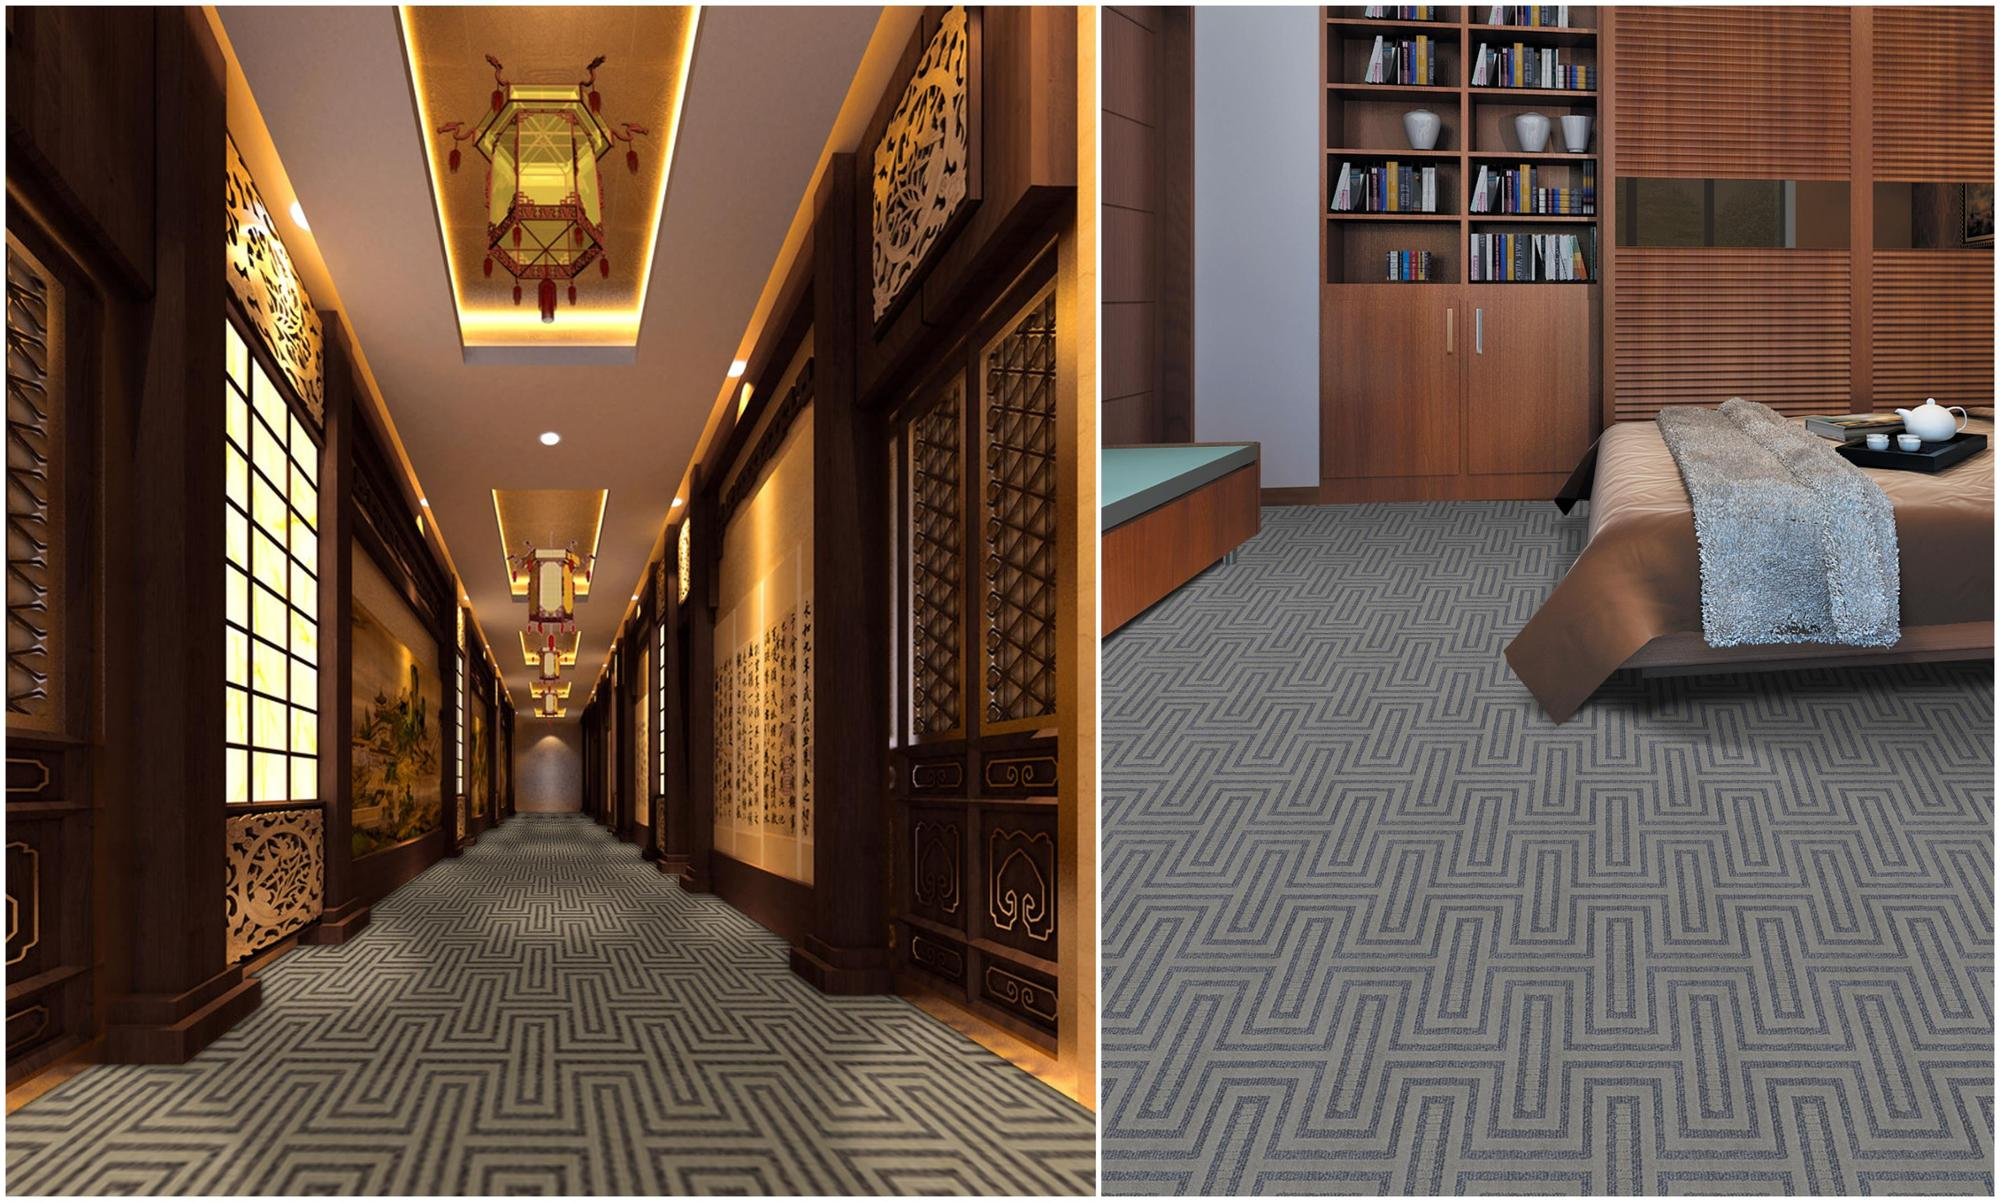 100% Polypropylene Stain Proof Tufted Carpet Floor From China